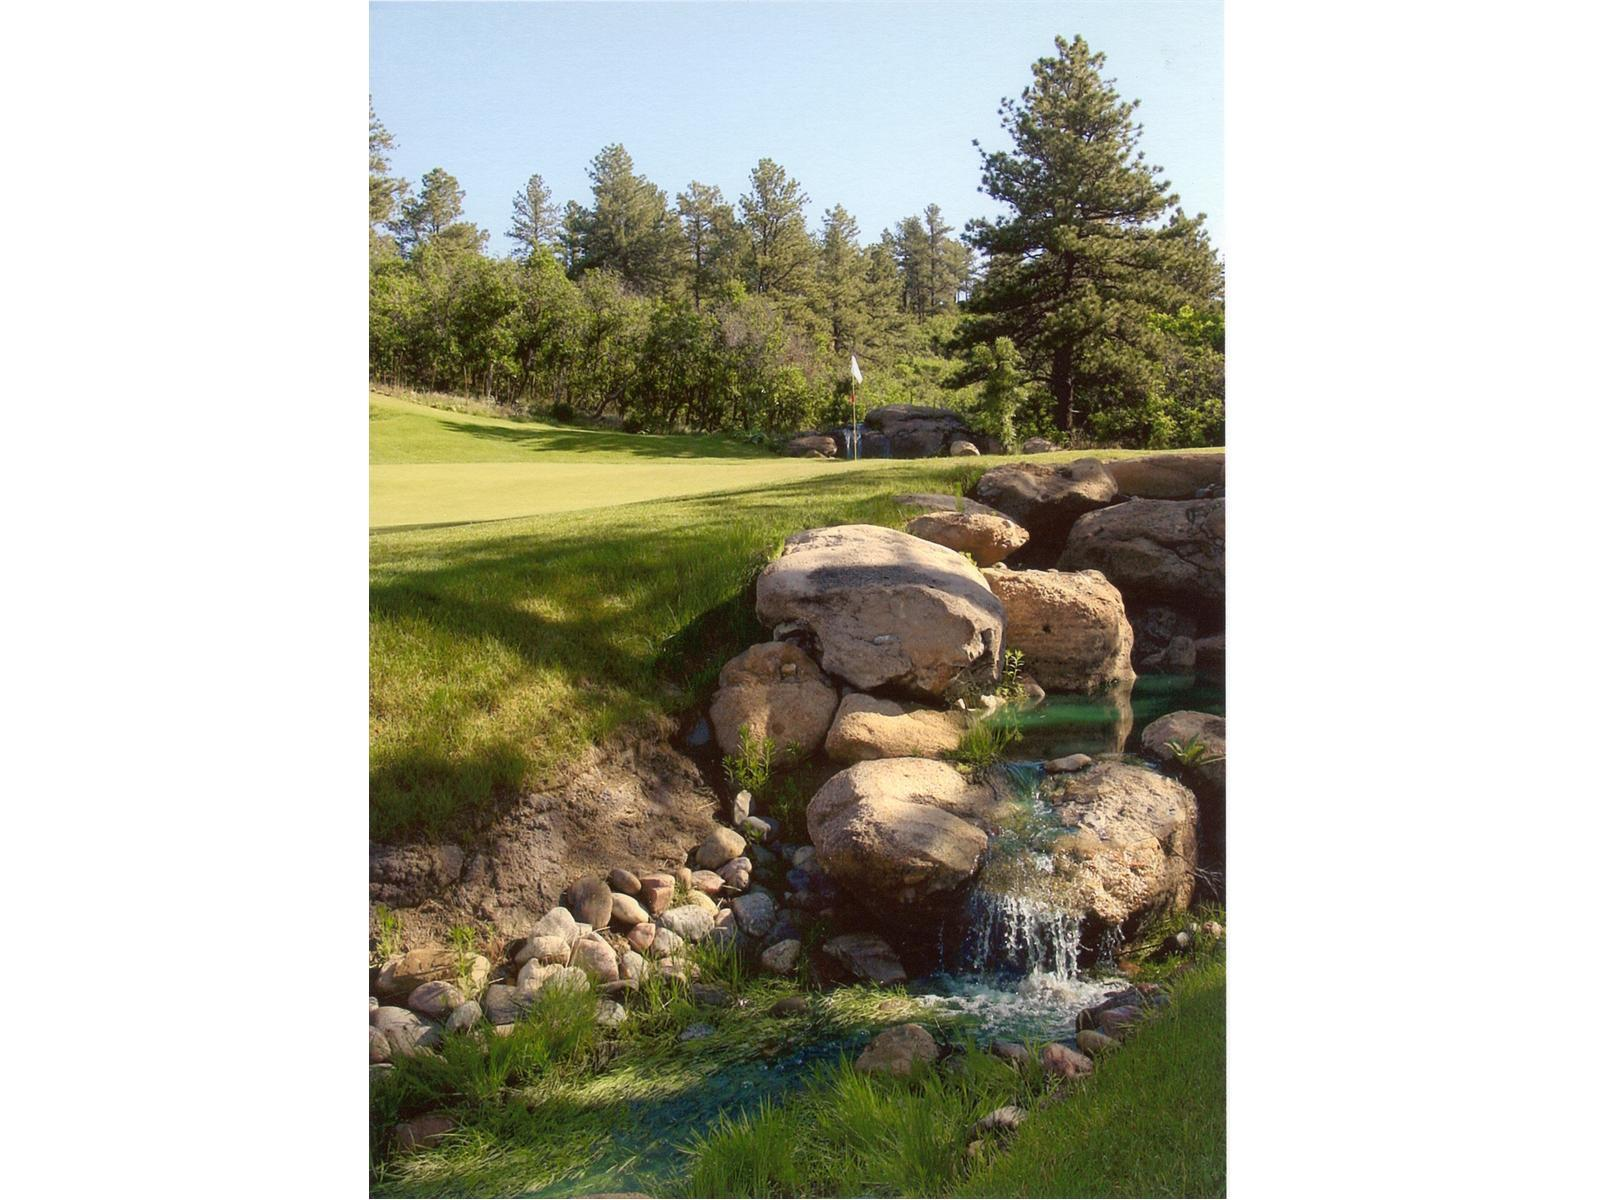 6792 YAMPA Drive, Larkspur, CO 80118 - Larkspur, CO real estate listing